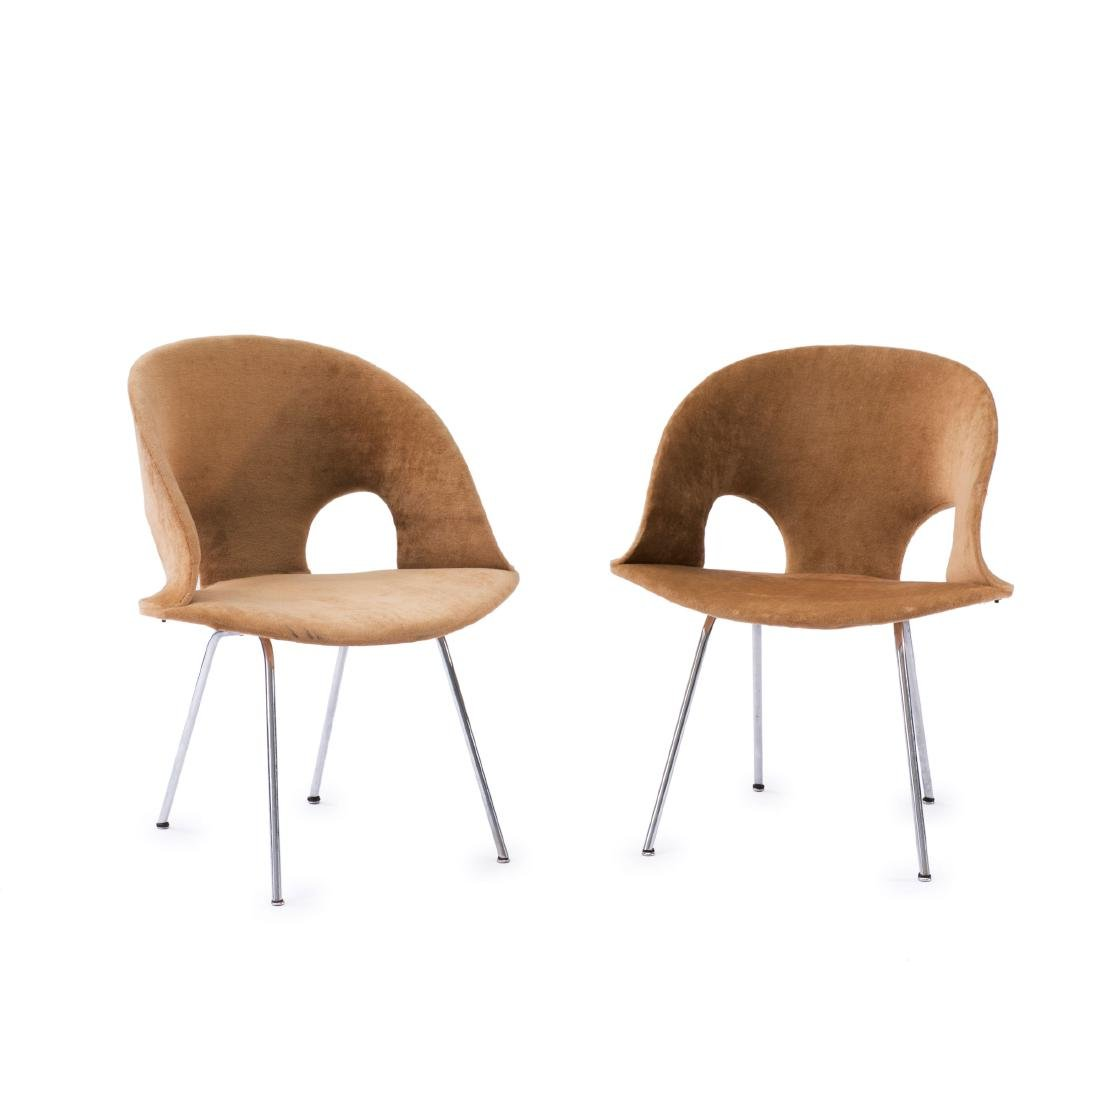 Two '350' armchairs, 1957